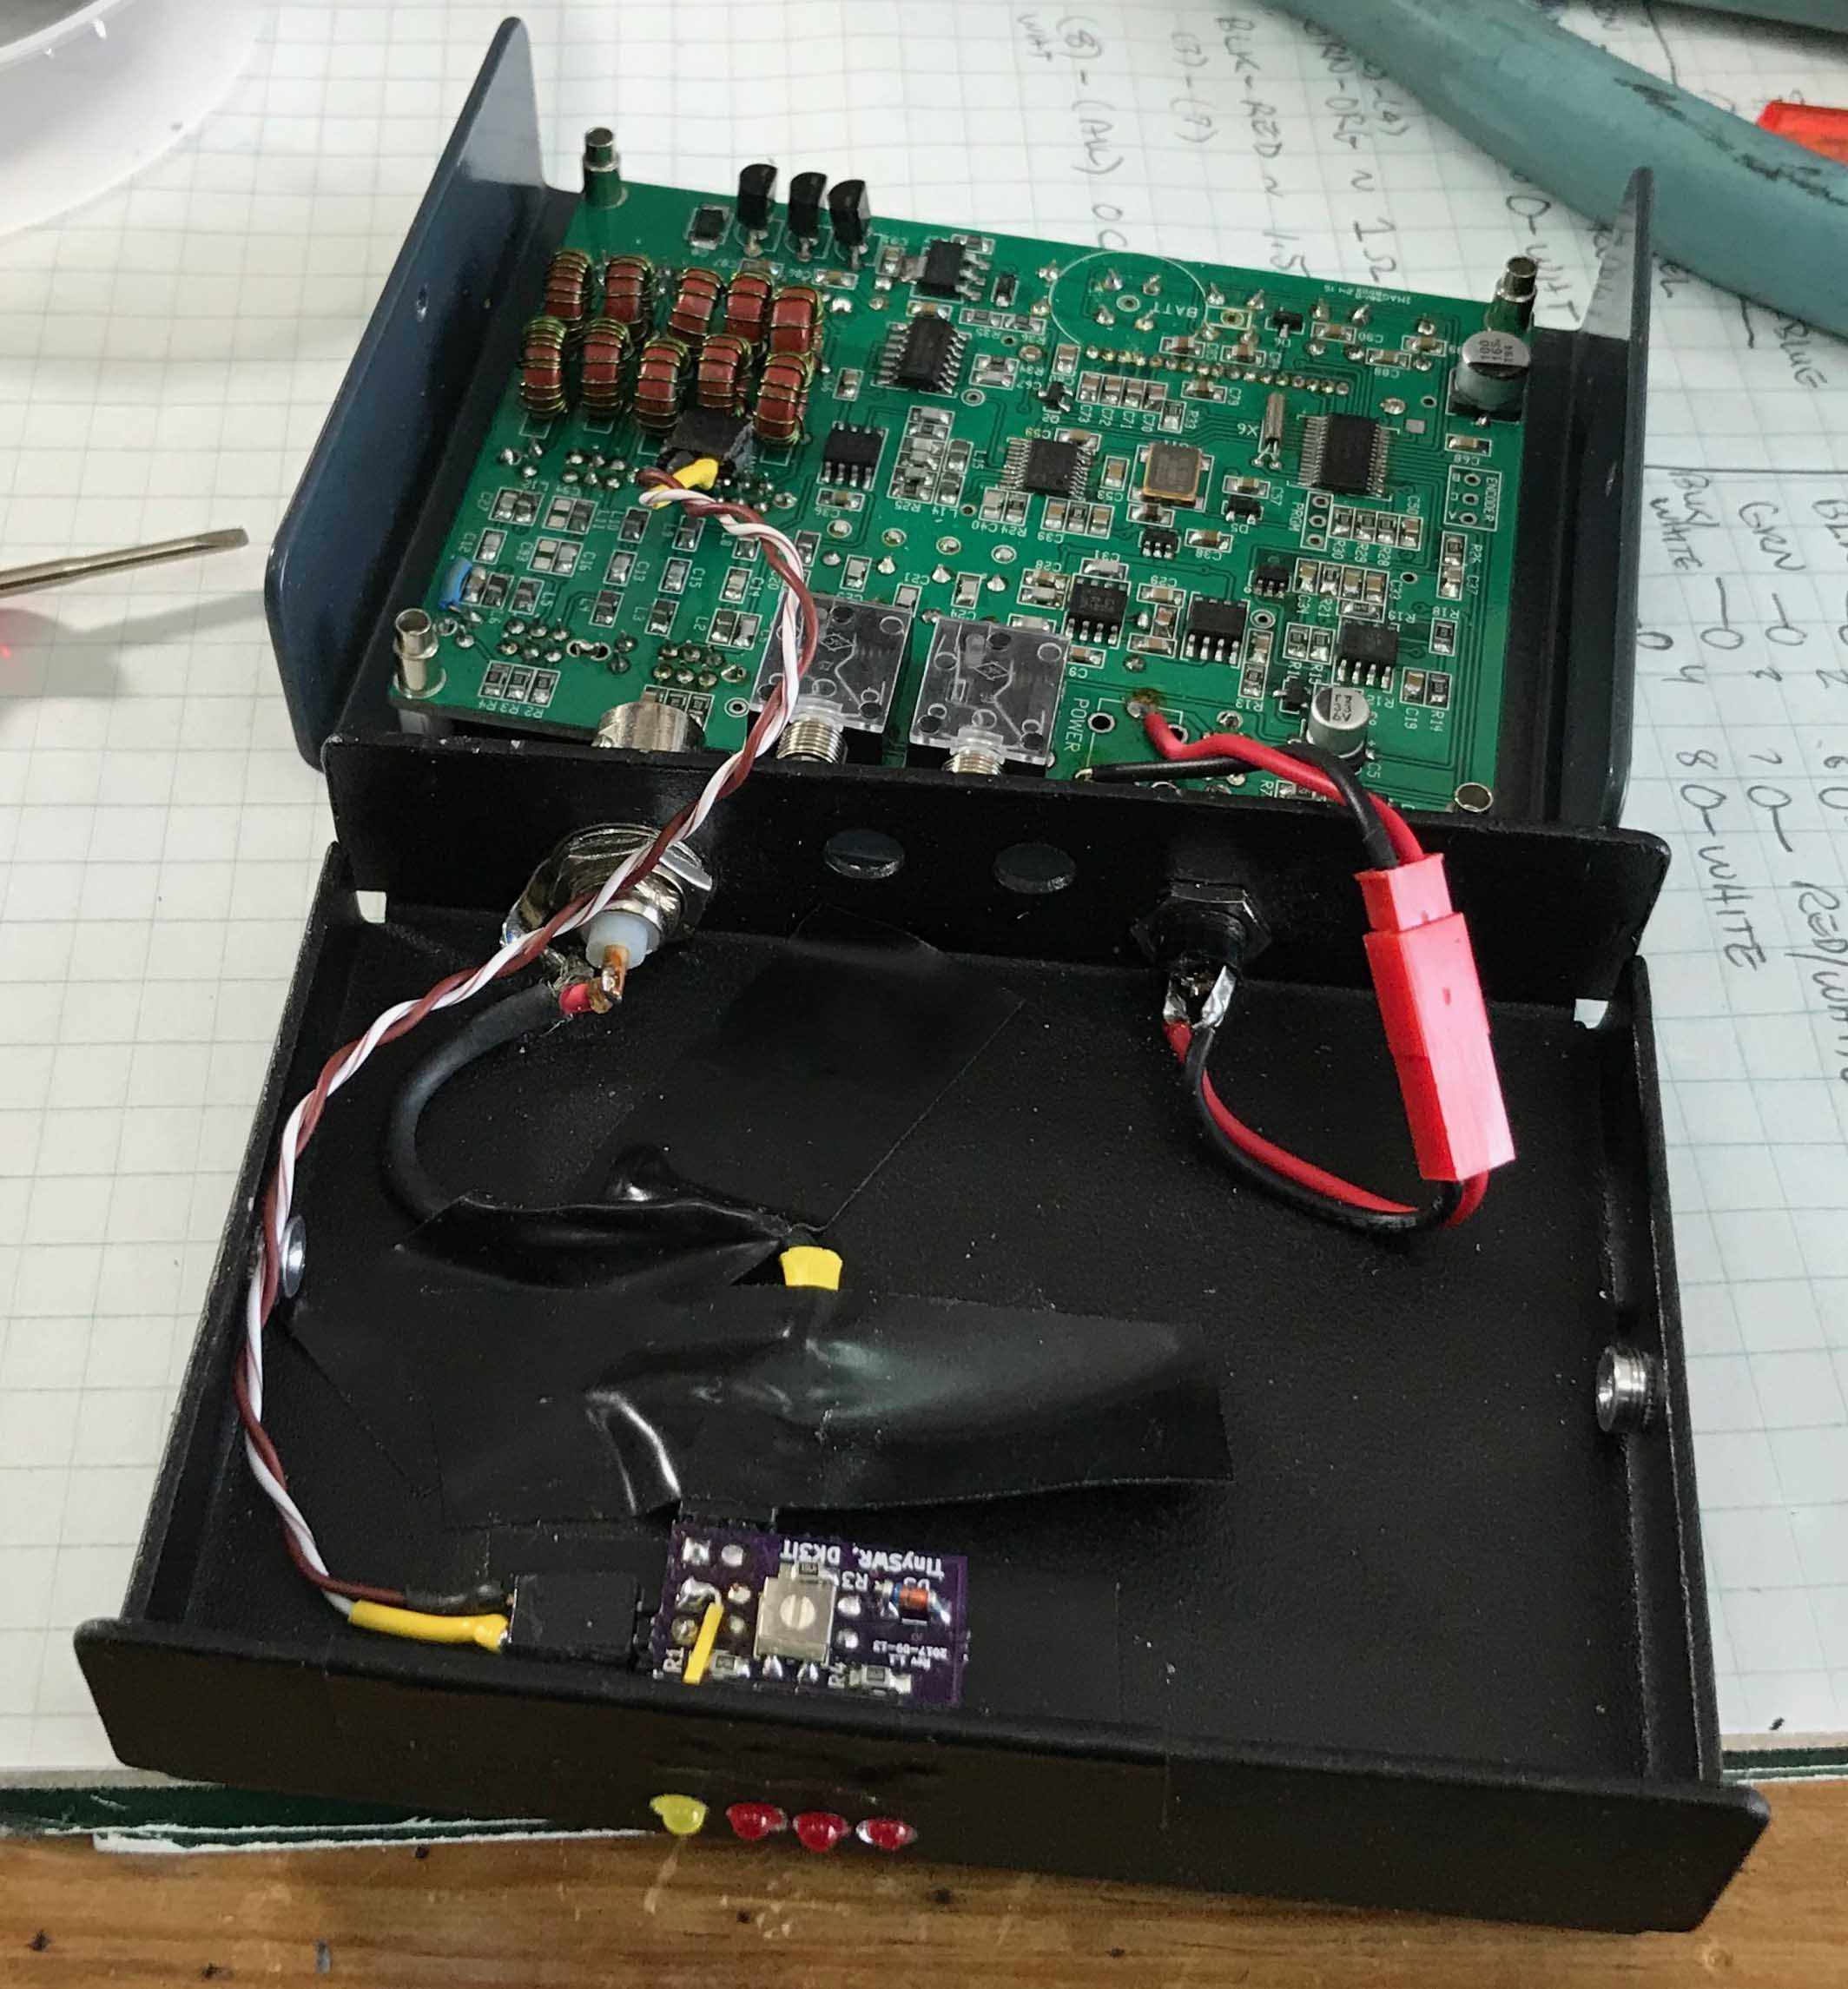 Ultralight Swr Indicator Equipment Sota Reflector Ledswrindicatorcircuit Measuringandtestcircuit Circuit The Leds Are A Little Dim But Bright Enough All That Is Needed Assurances Radio And Antenna Working Properly This Does It